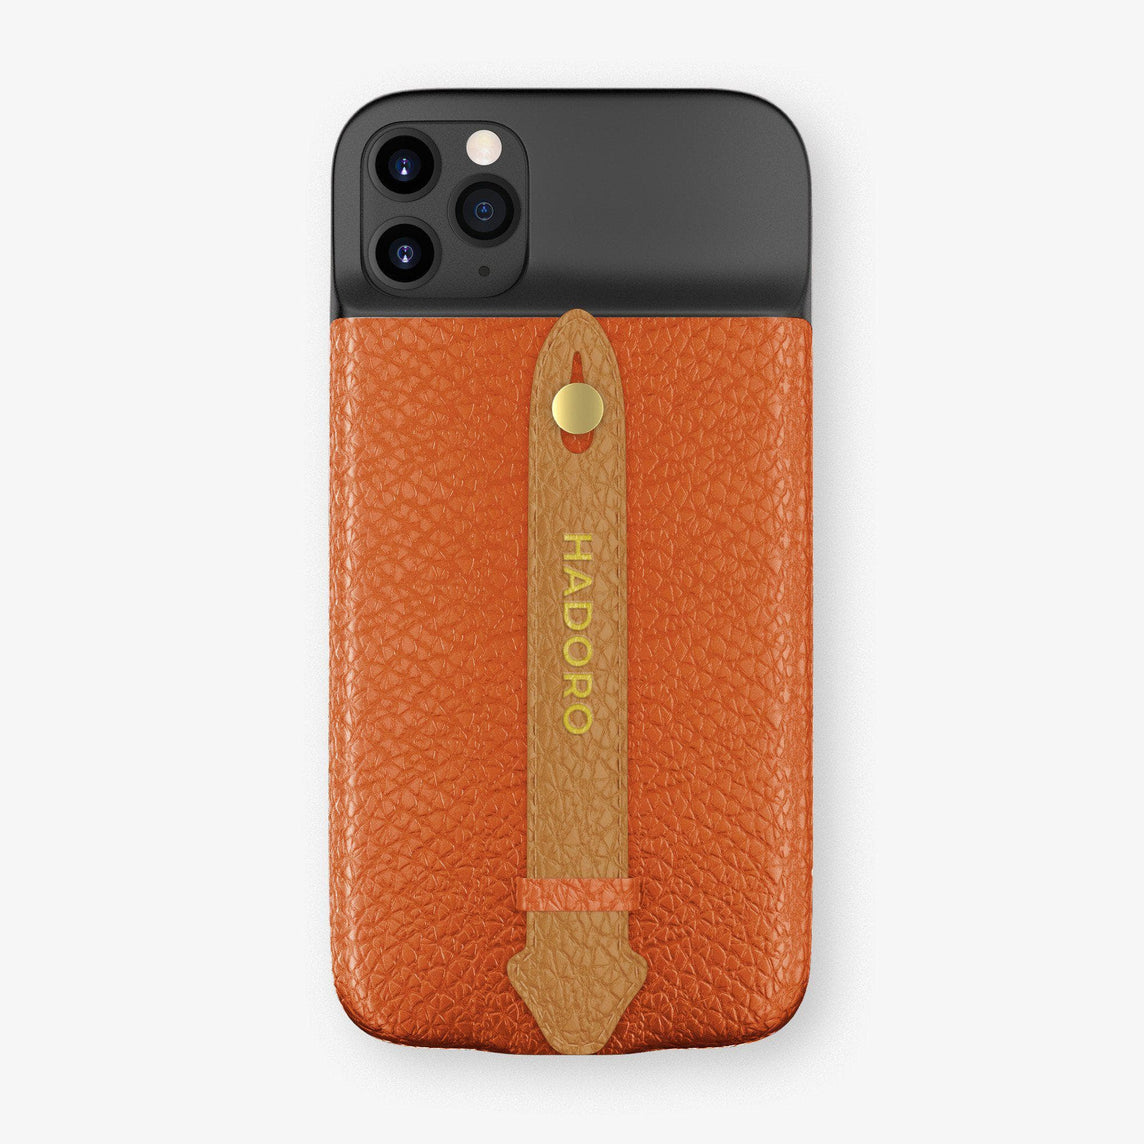 Calfskin Battery Finger Case for iPhone 11 Pro Max | Orange/Cognac - Yellow Gold without-personalization